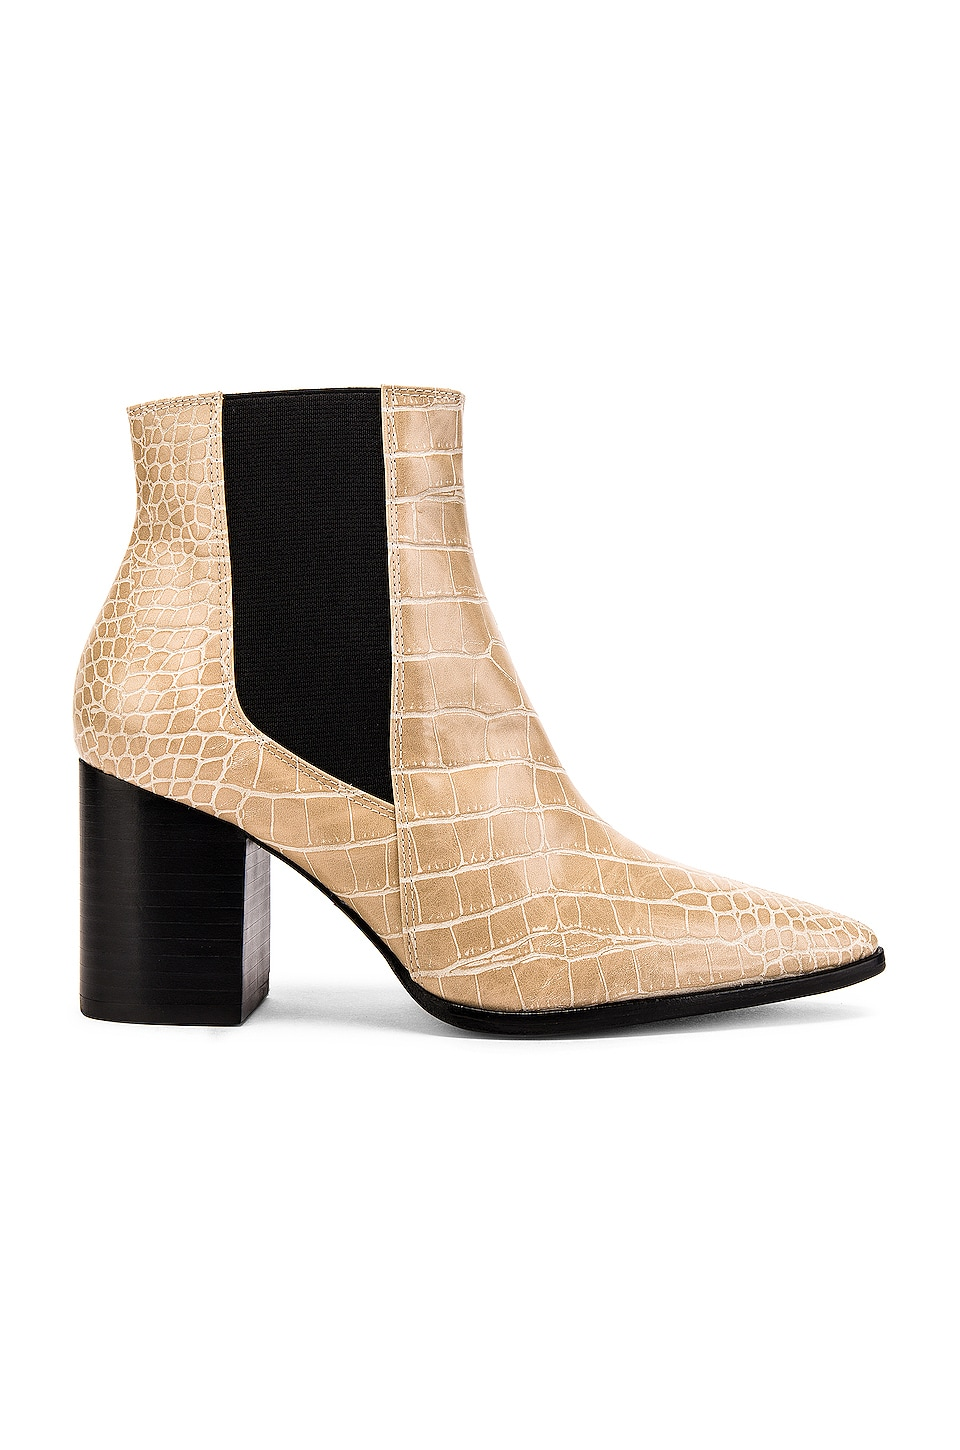 House of Harlow 1960 X REVOLVE Nick Bootie in Nude Croc